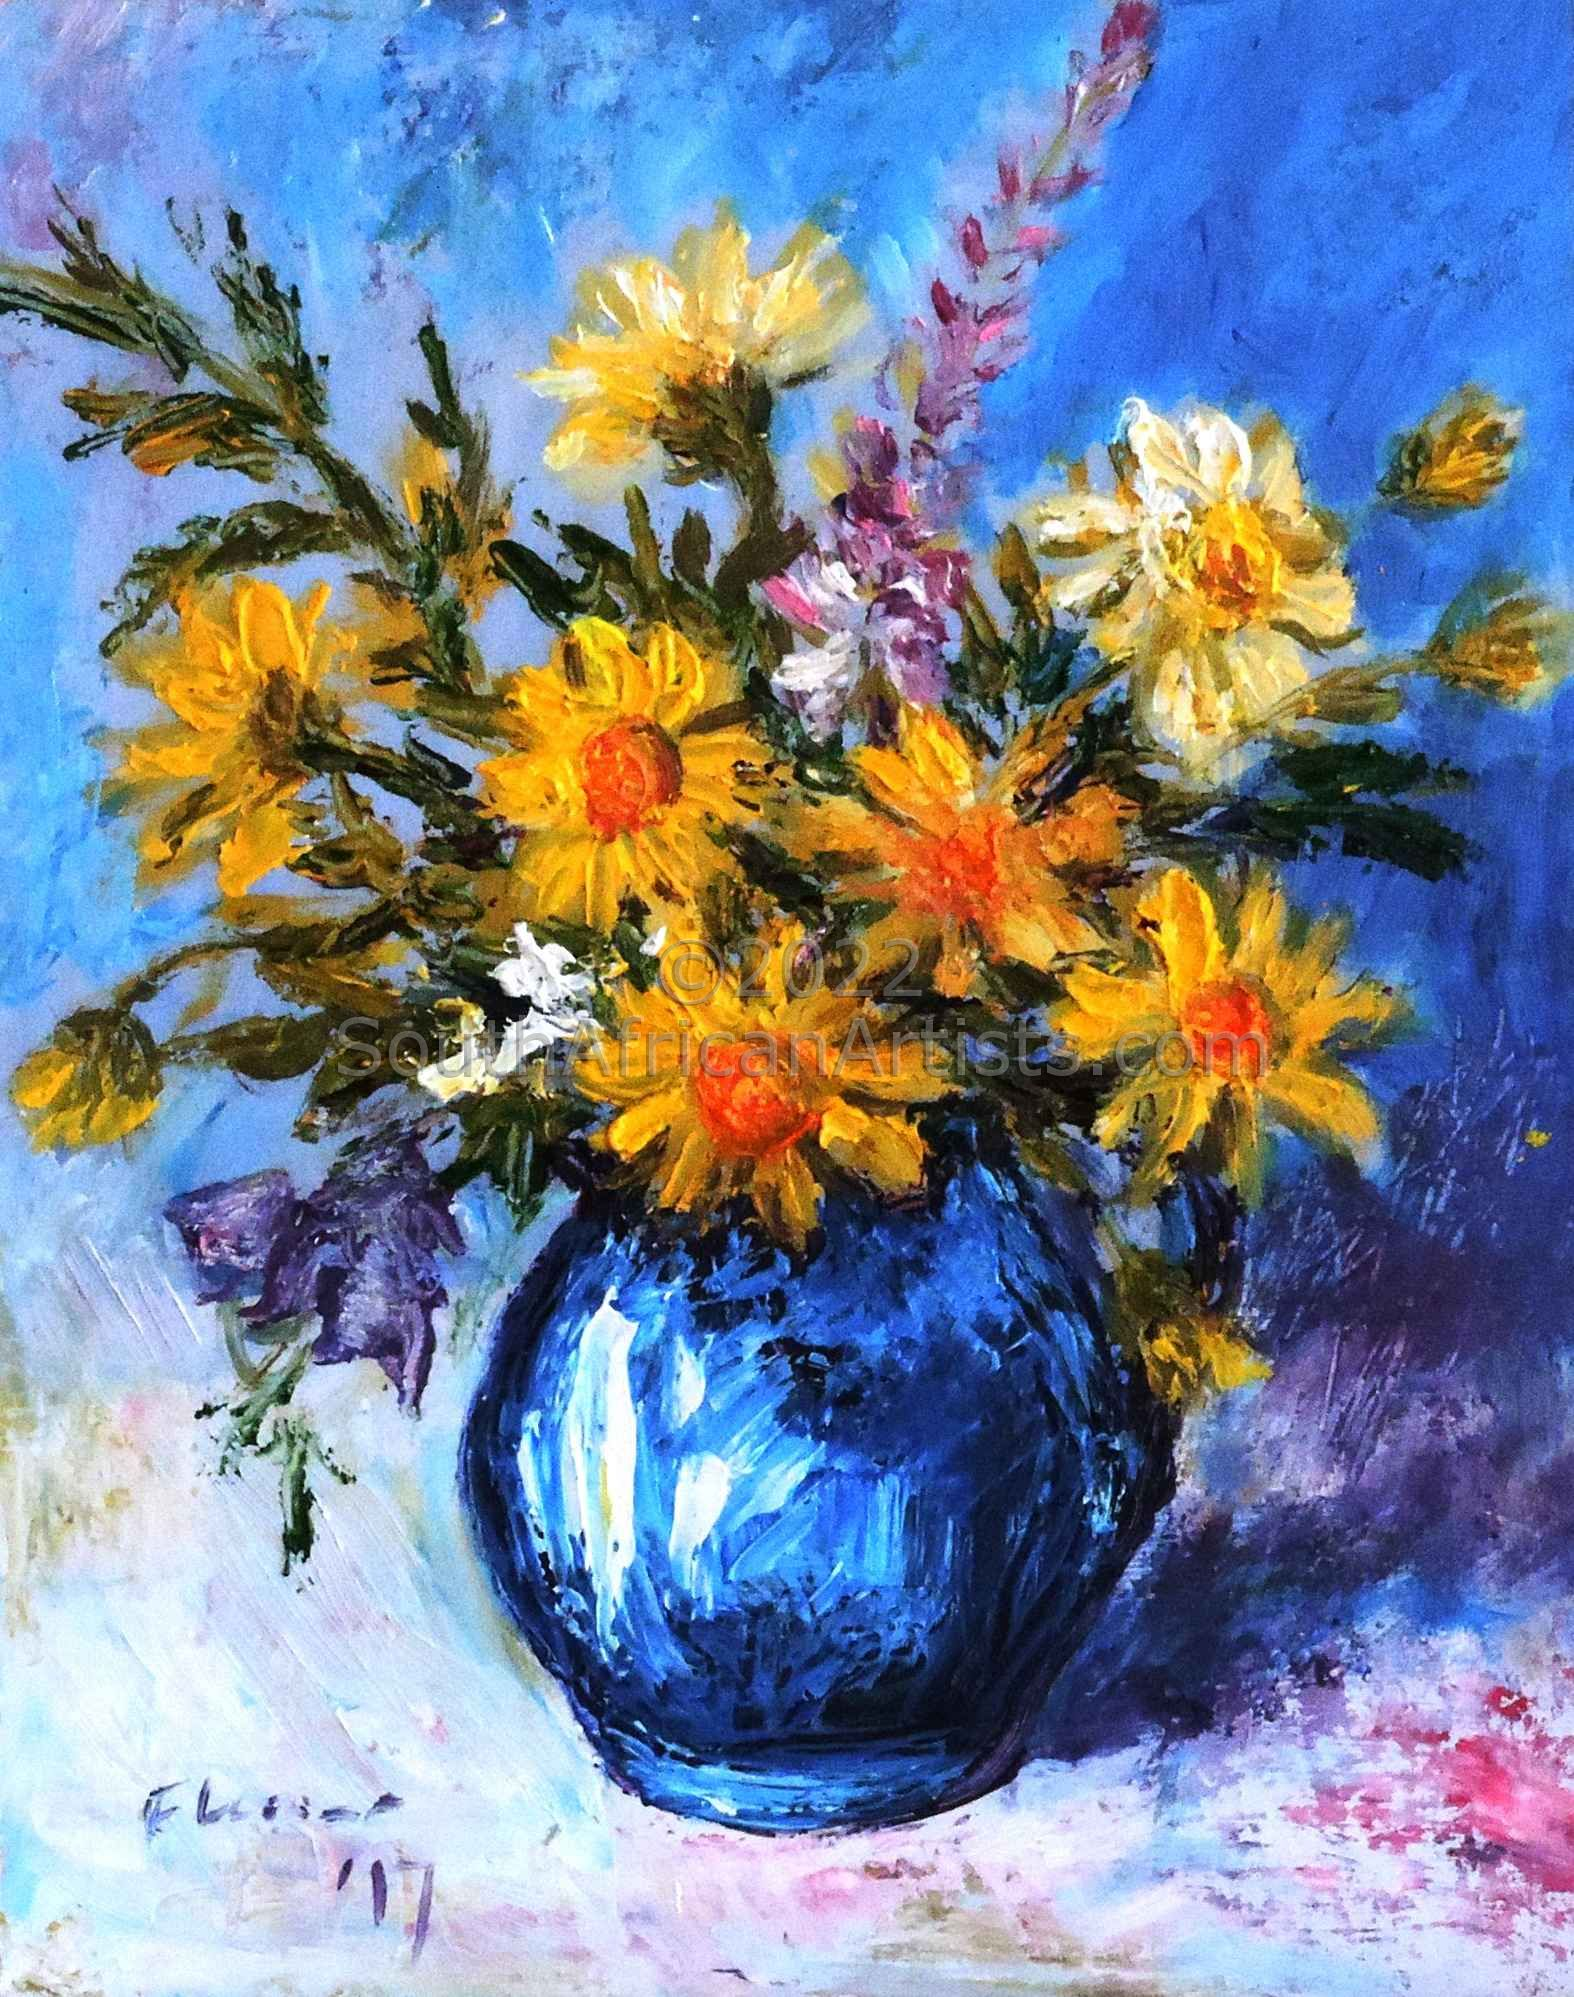 Blue Jug with Daisies